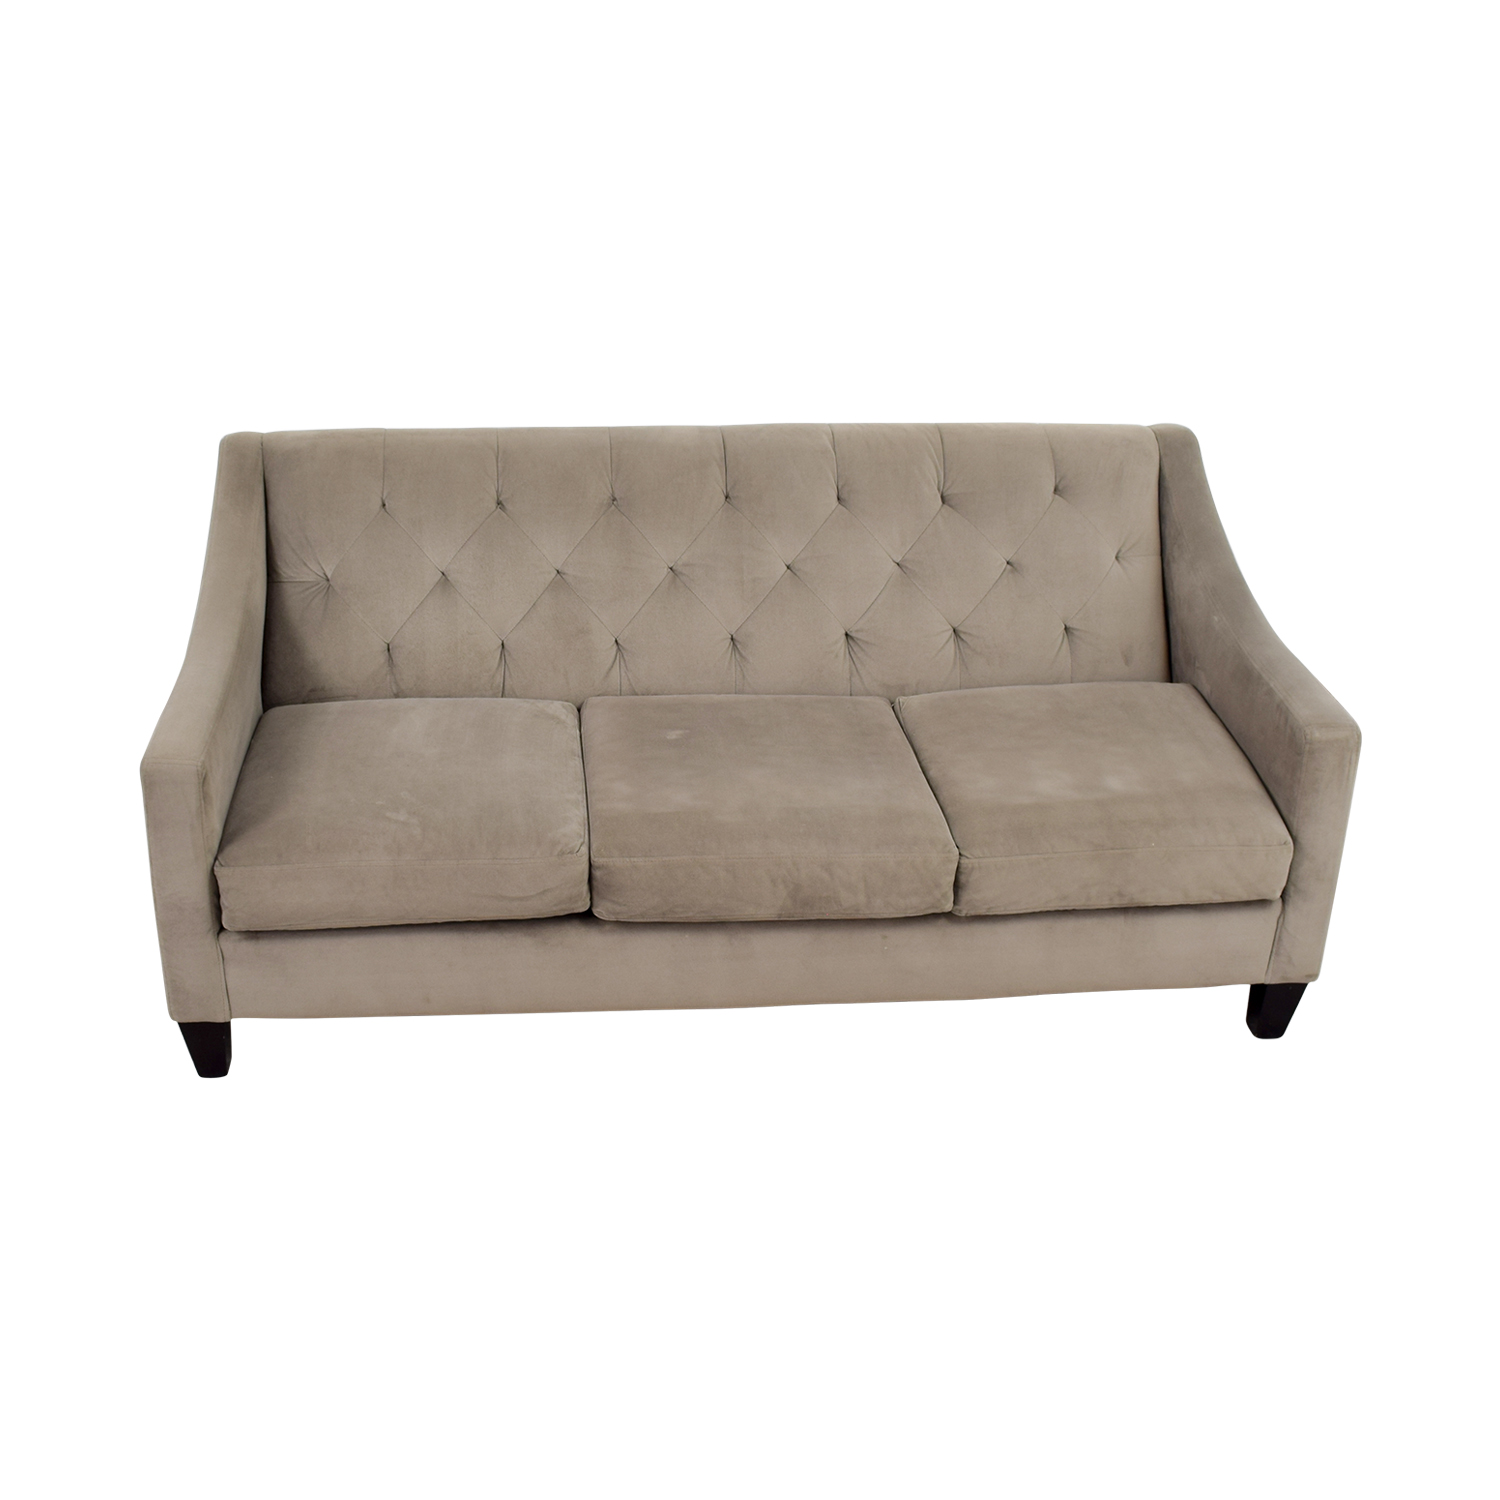 Macys Macys Gray Microfiber Tufted Three-Cushion Couch coupon